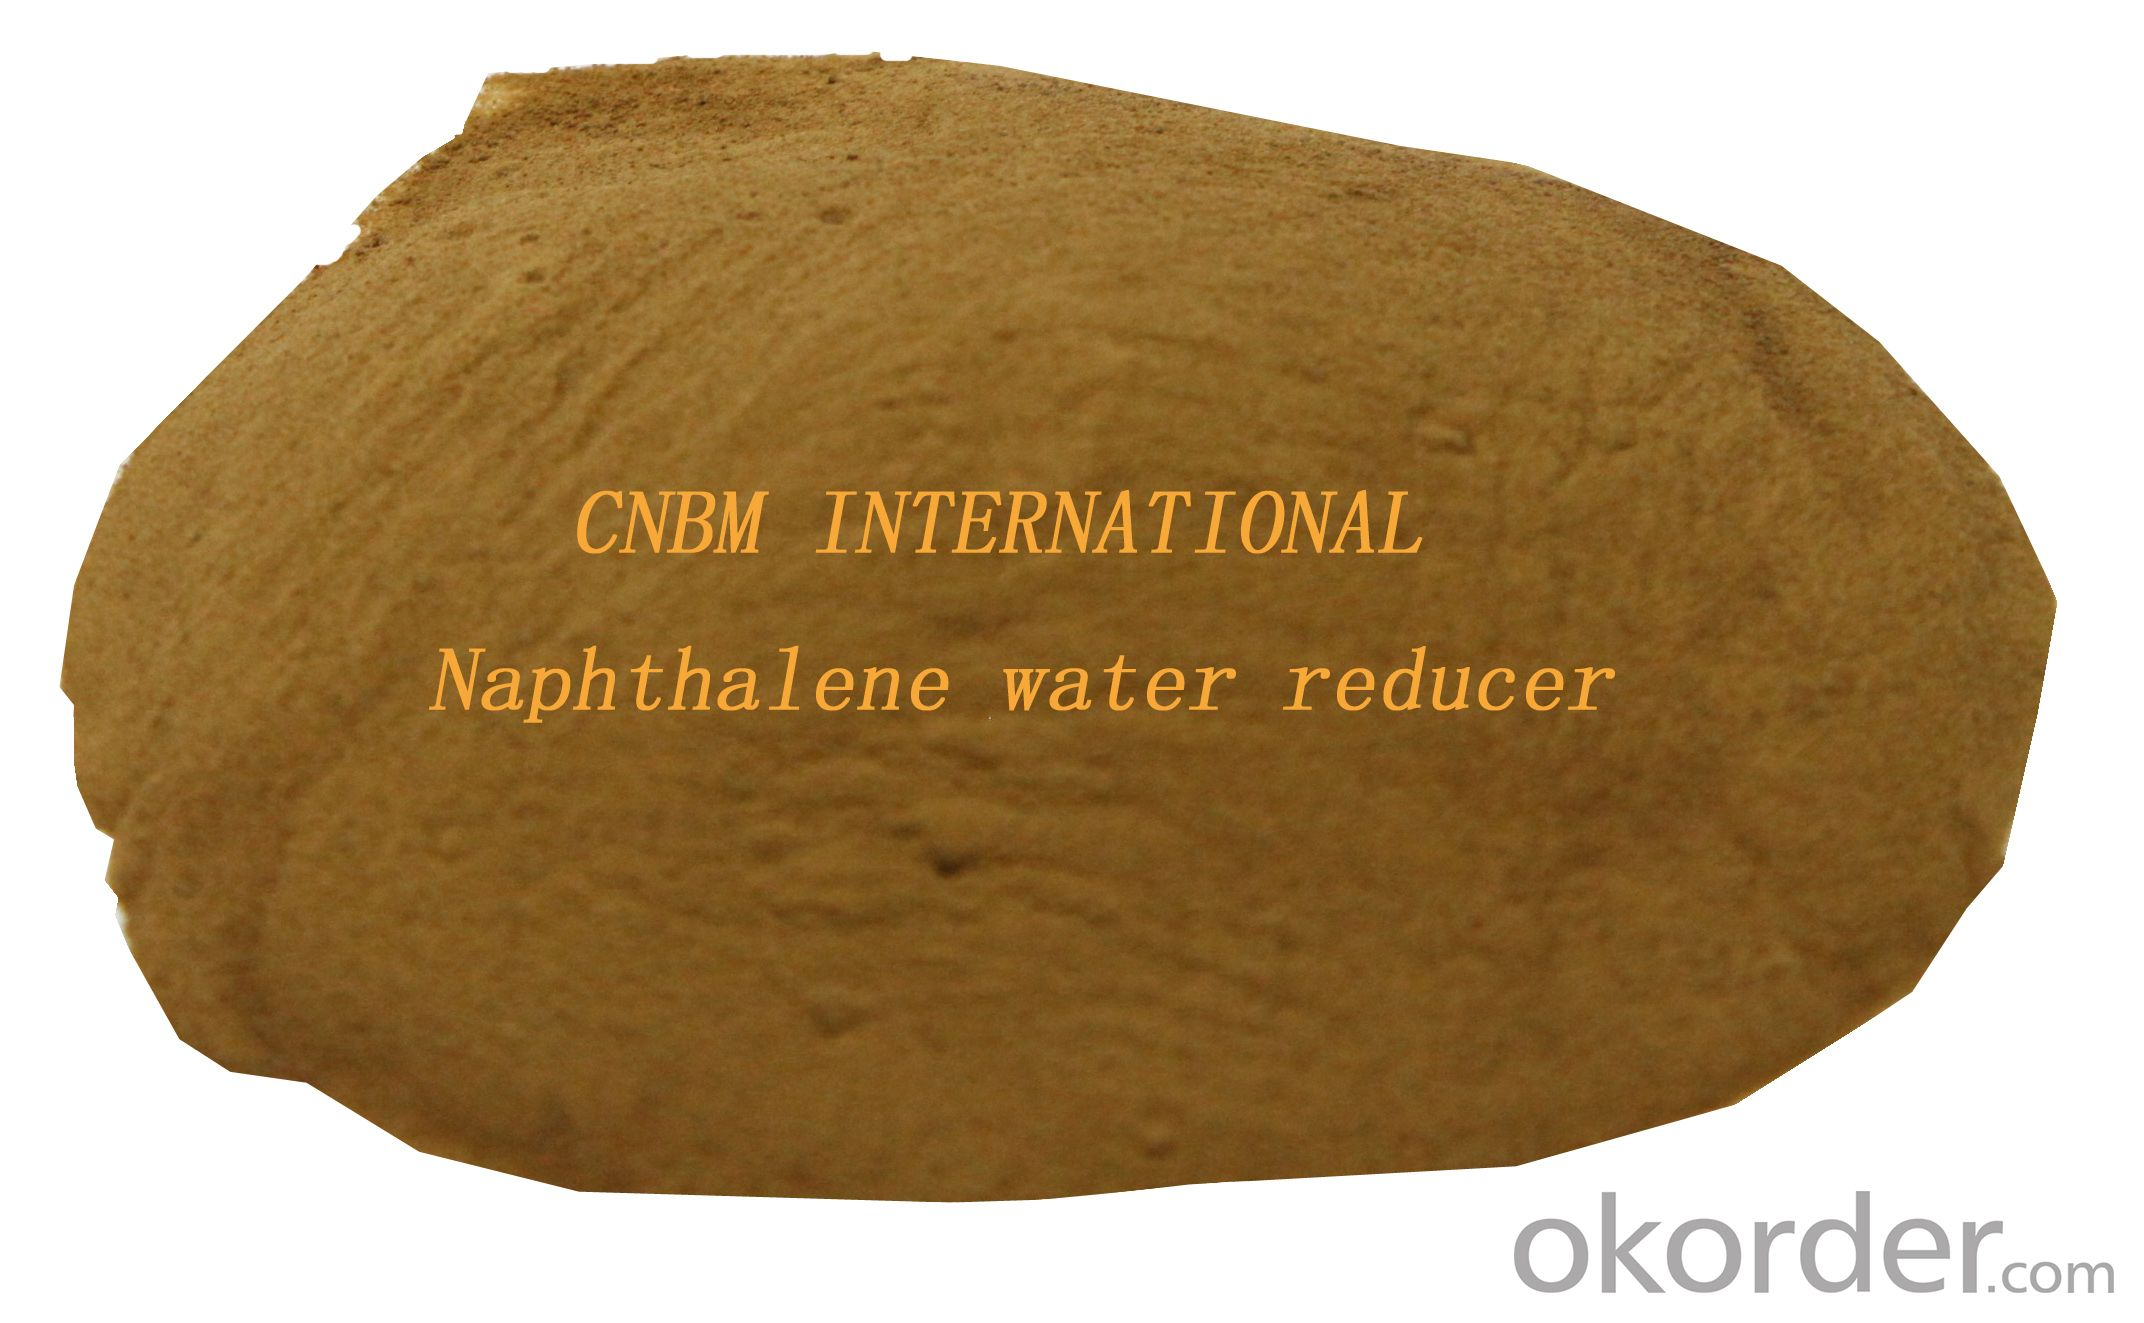 Sodium Naphthalene Formaldehyde water reducer